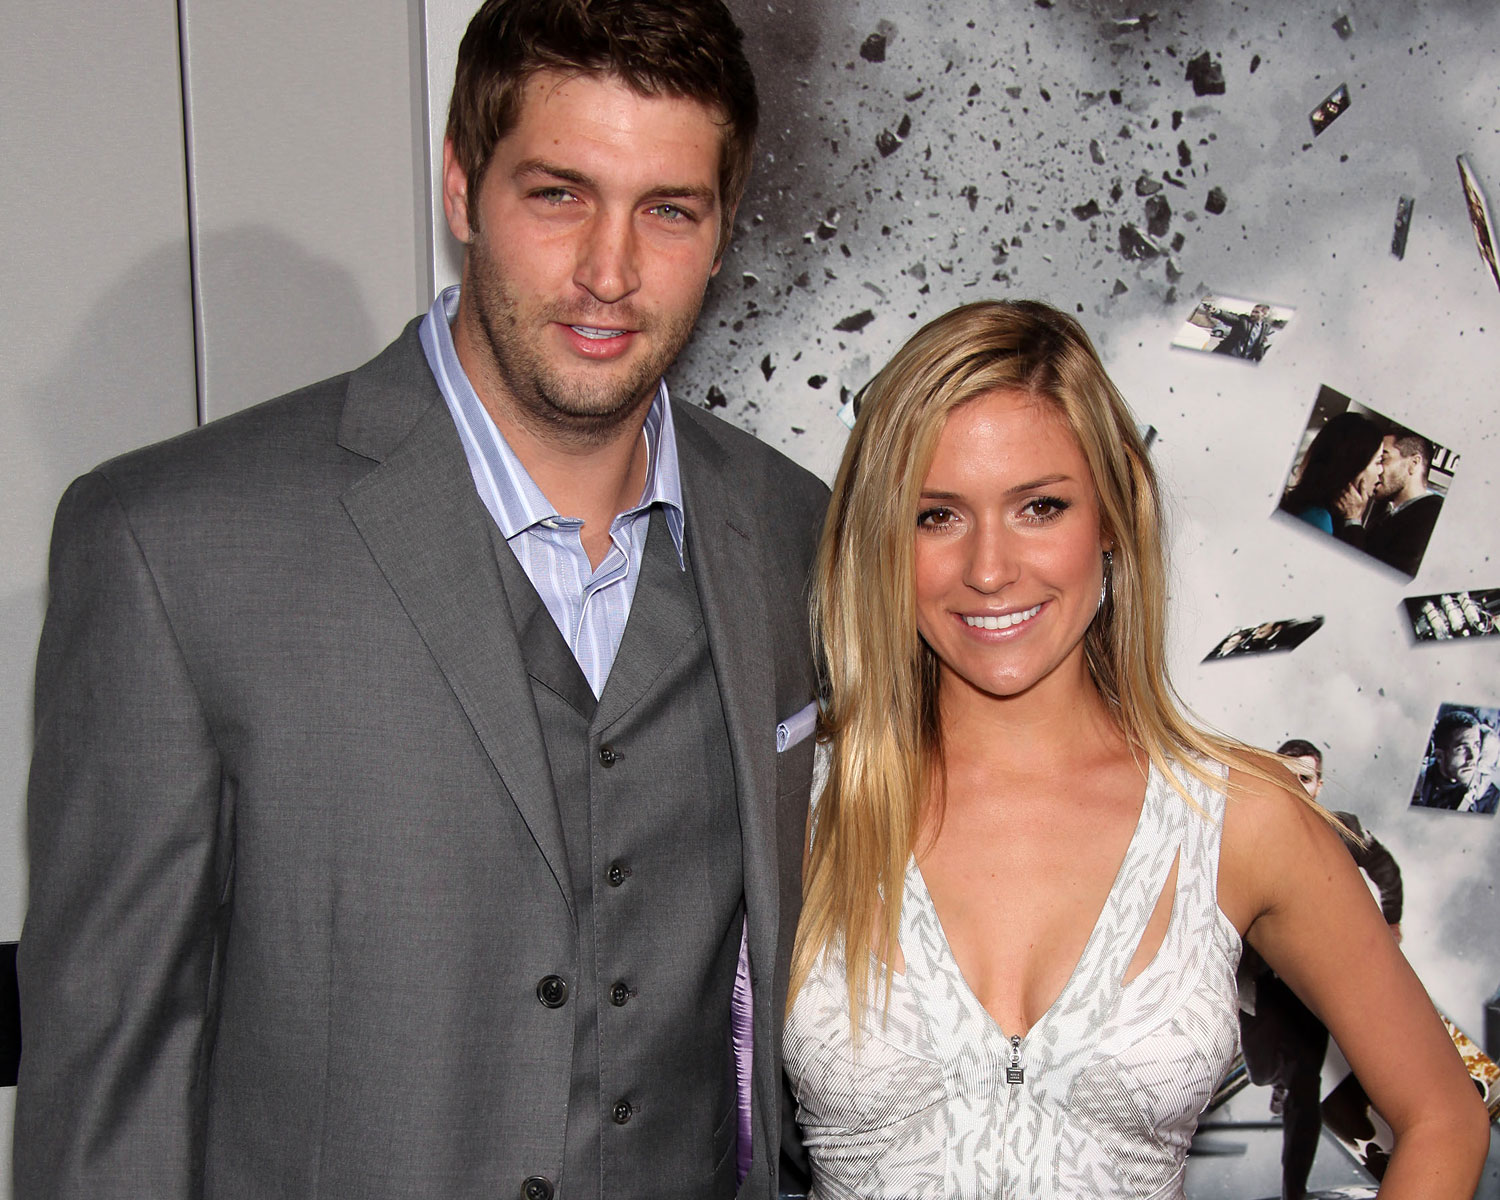 Kristin Cavallari Wedding.Jay Cutler S 5 Year Wedding Anniversary Gift For Kristin Cavallari